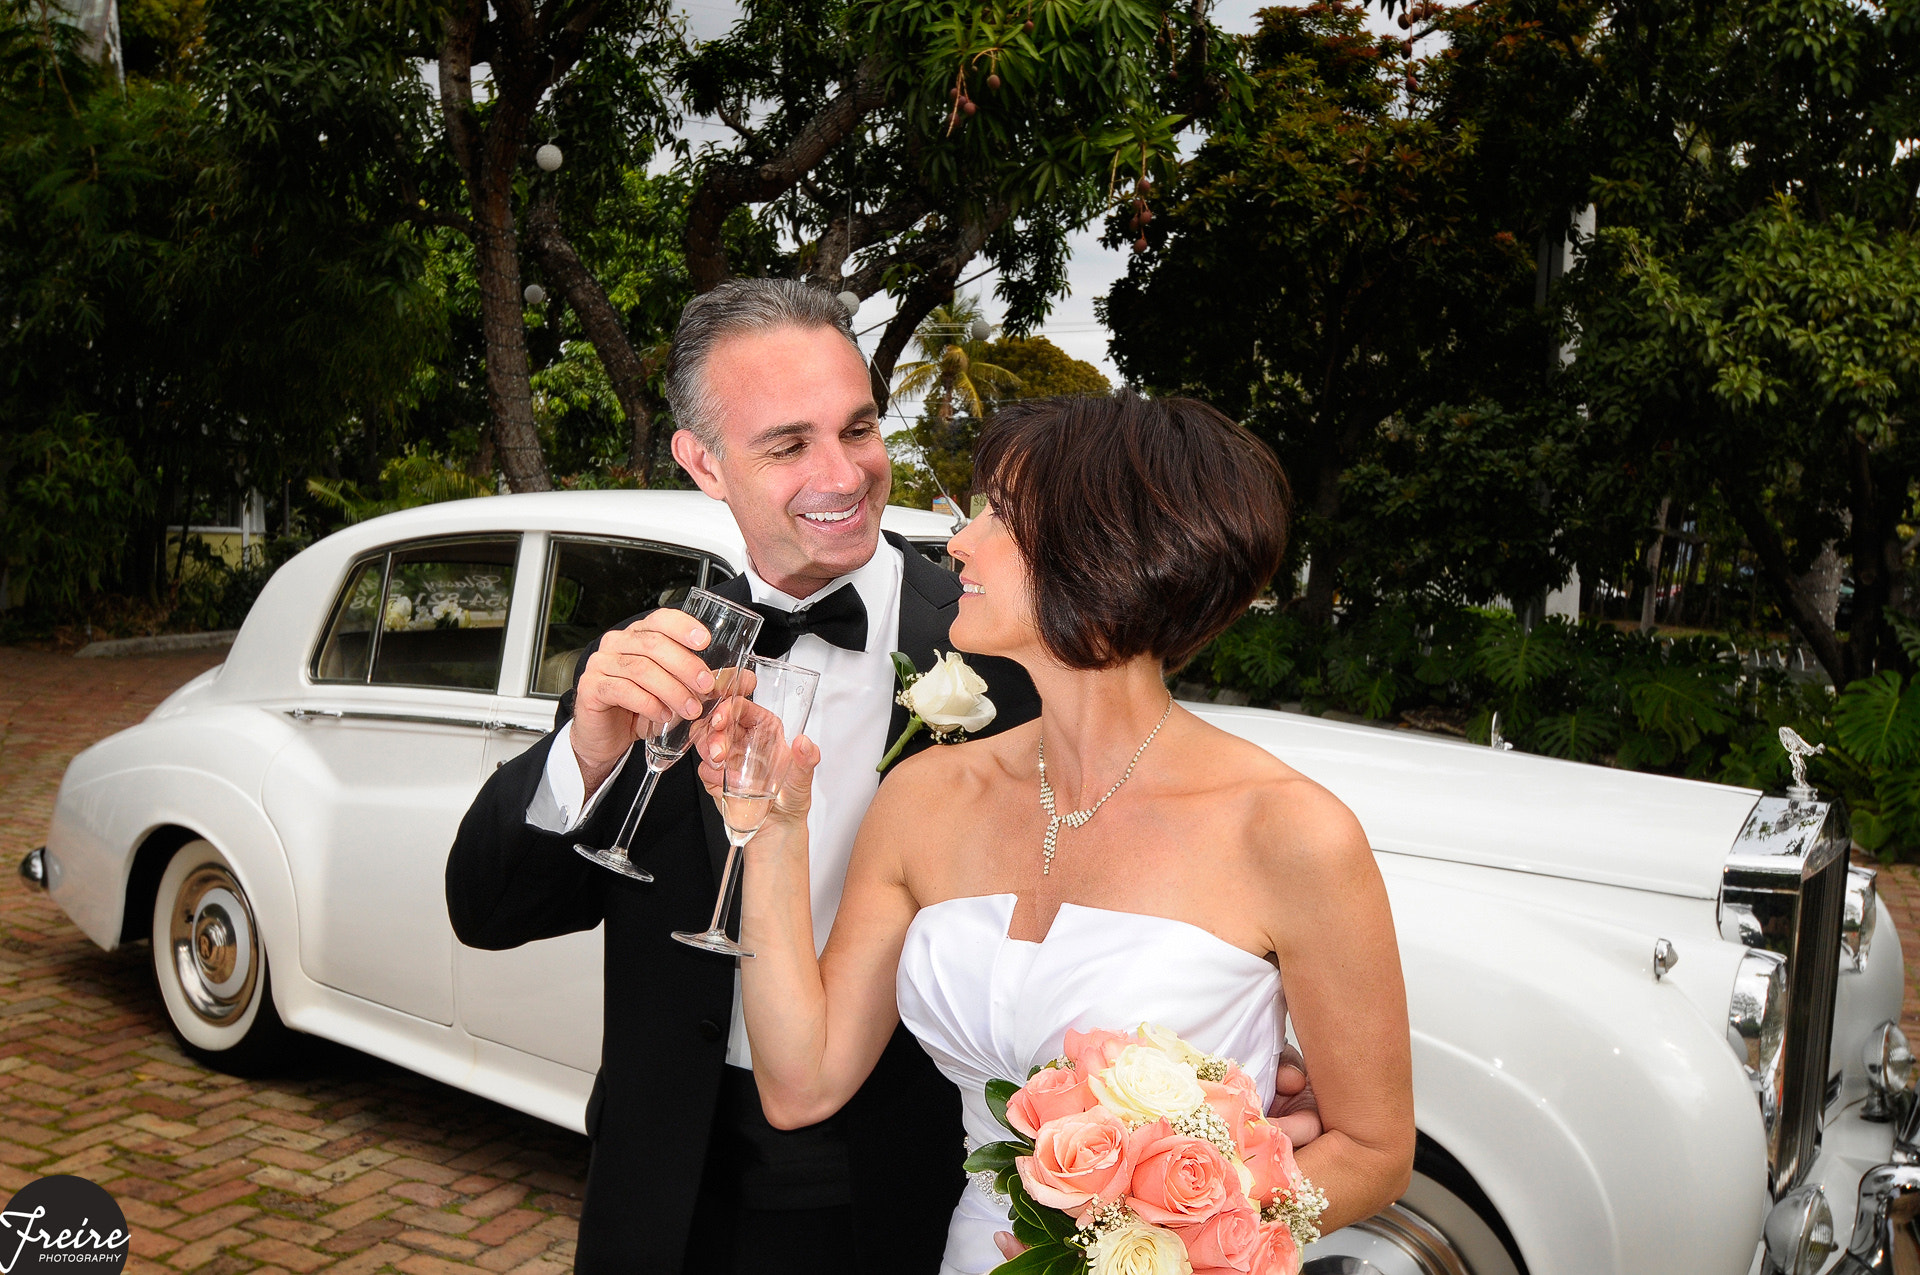 Photograph Joline and John Wedding by Jan Freire on 500px